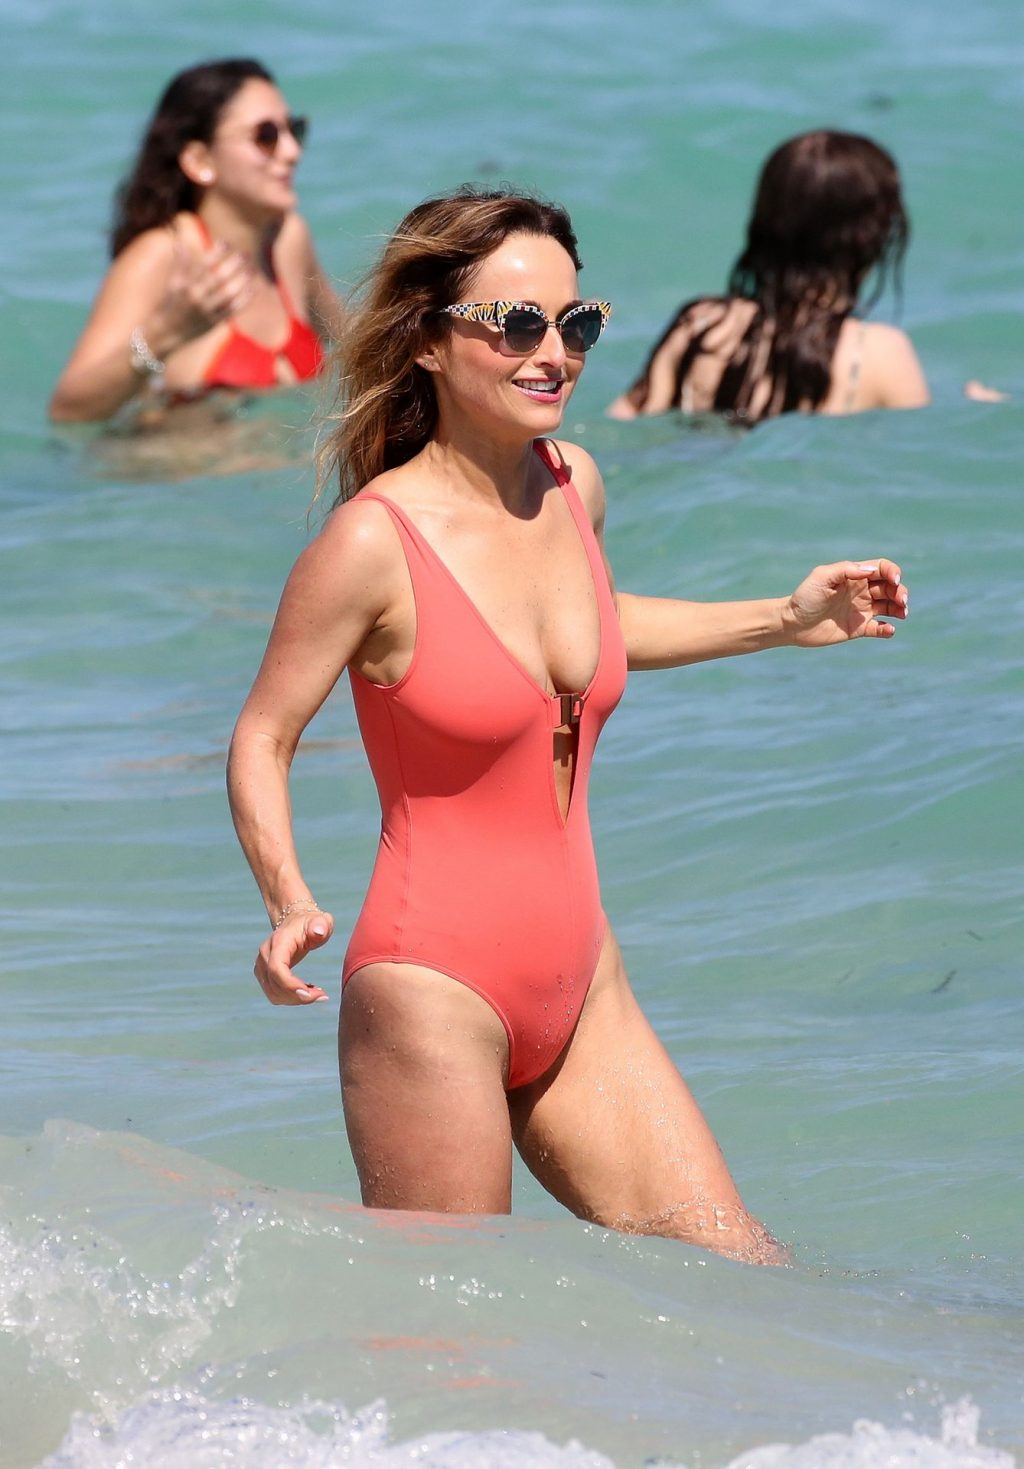 Giada De Laurentiis Show Off Her Curves in a Sexy Pink